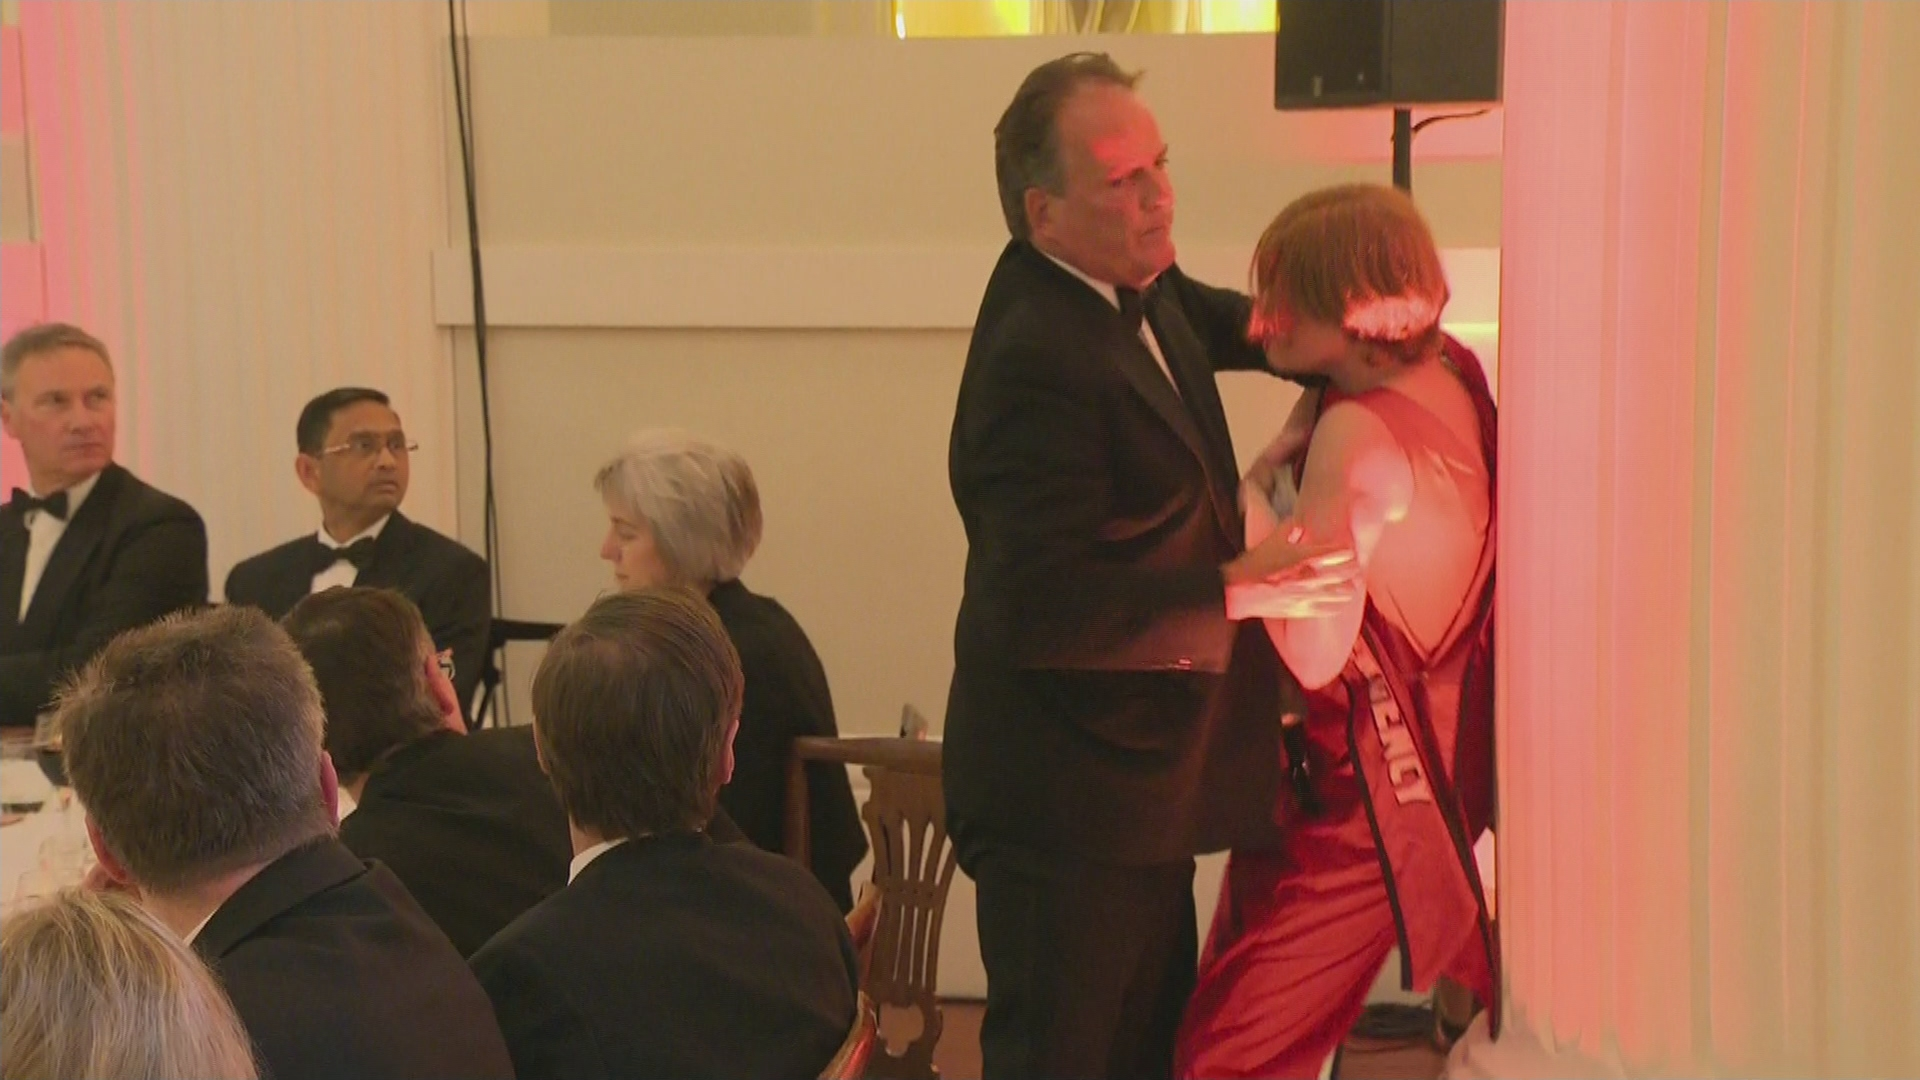 Investigation Into Tory MP Mark Field's Manhandling Of Female Protester Dropped